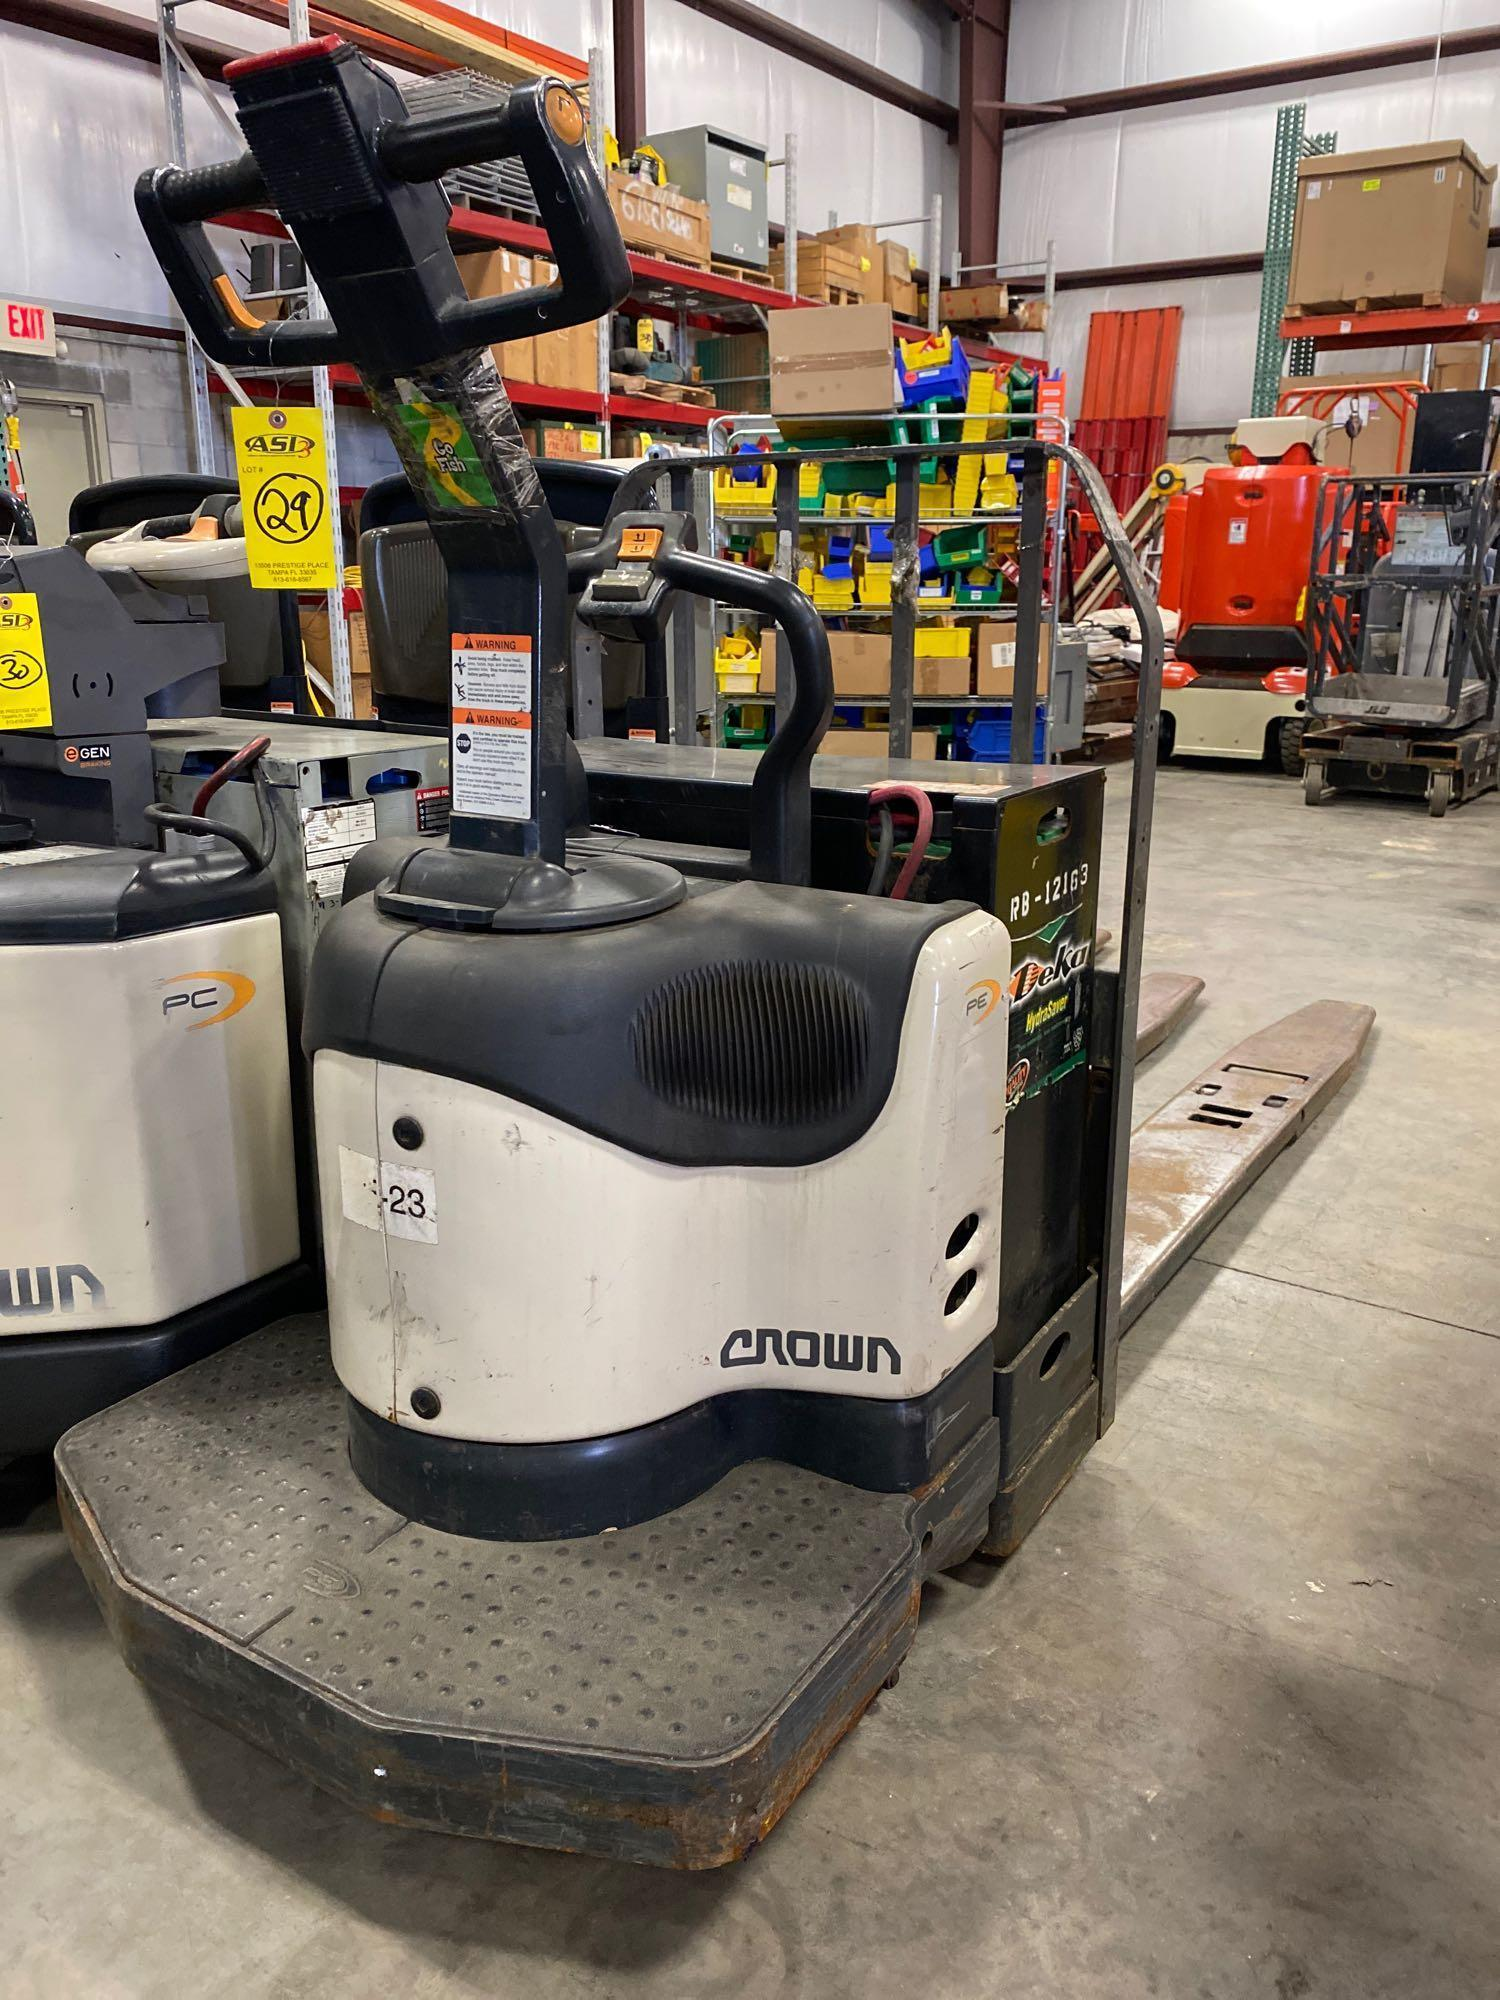 CROWN PE4000-60 ELECTRIC PALLET JACK, 6,000 LB CAPACITY, 24V, RUNS AND OPERATES